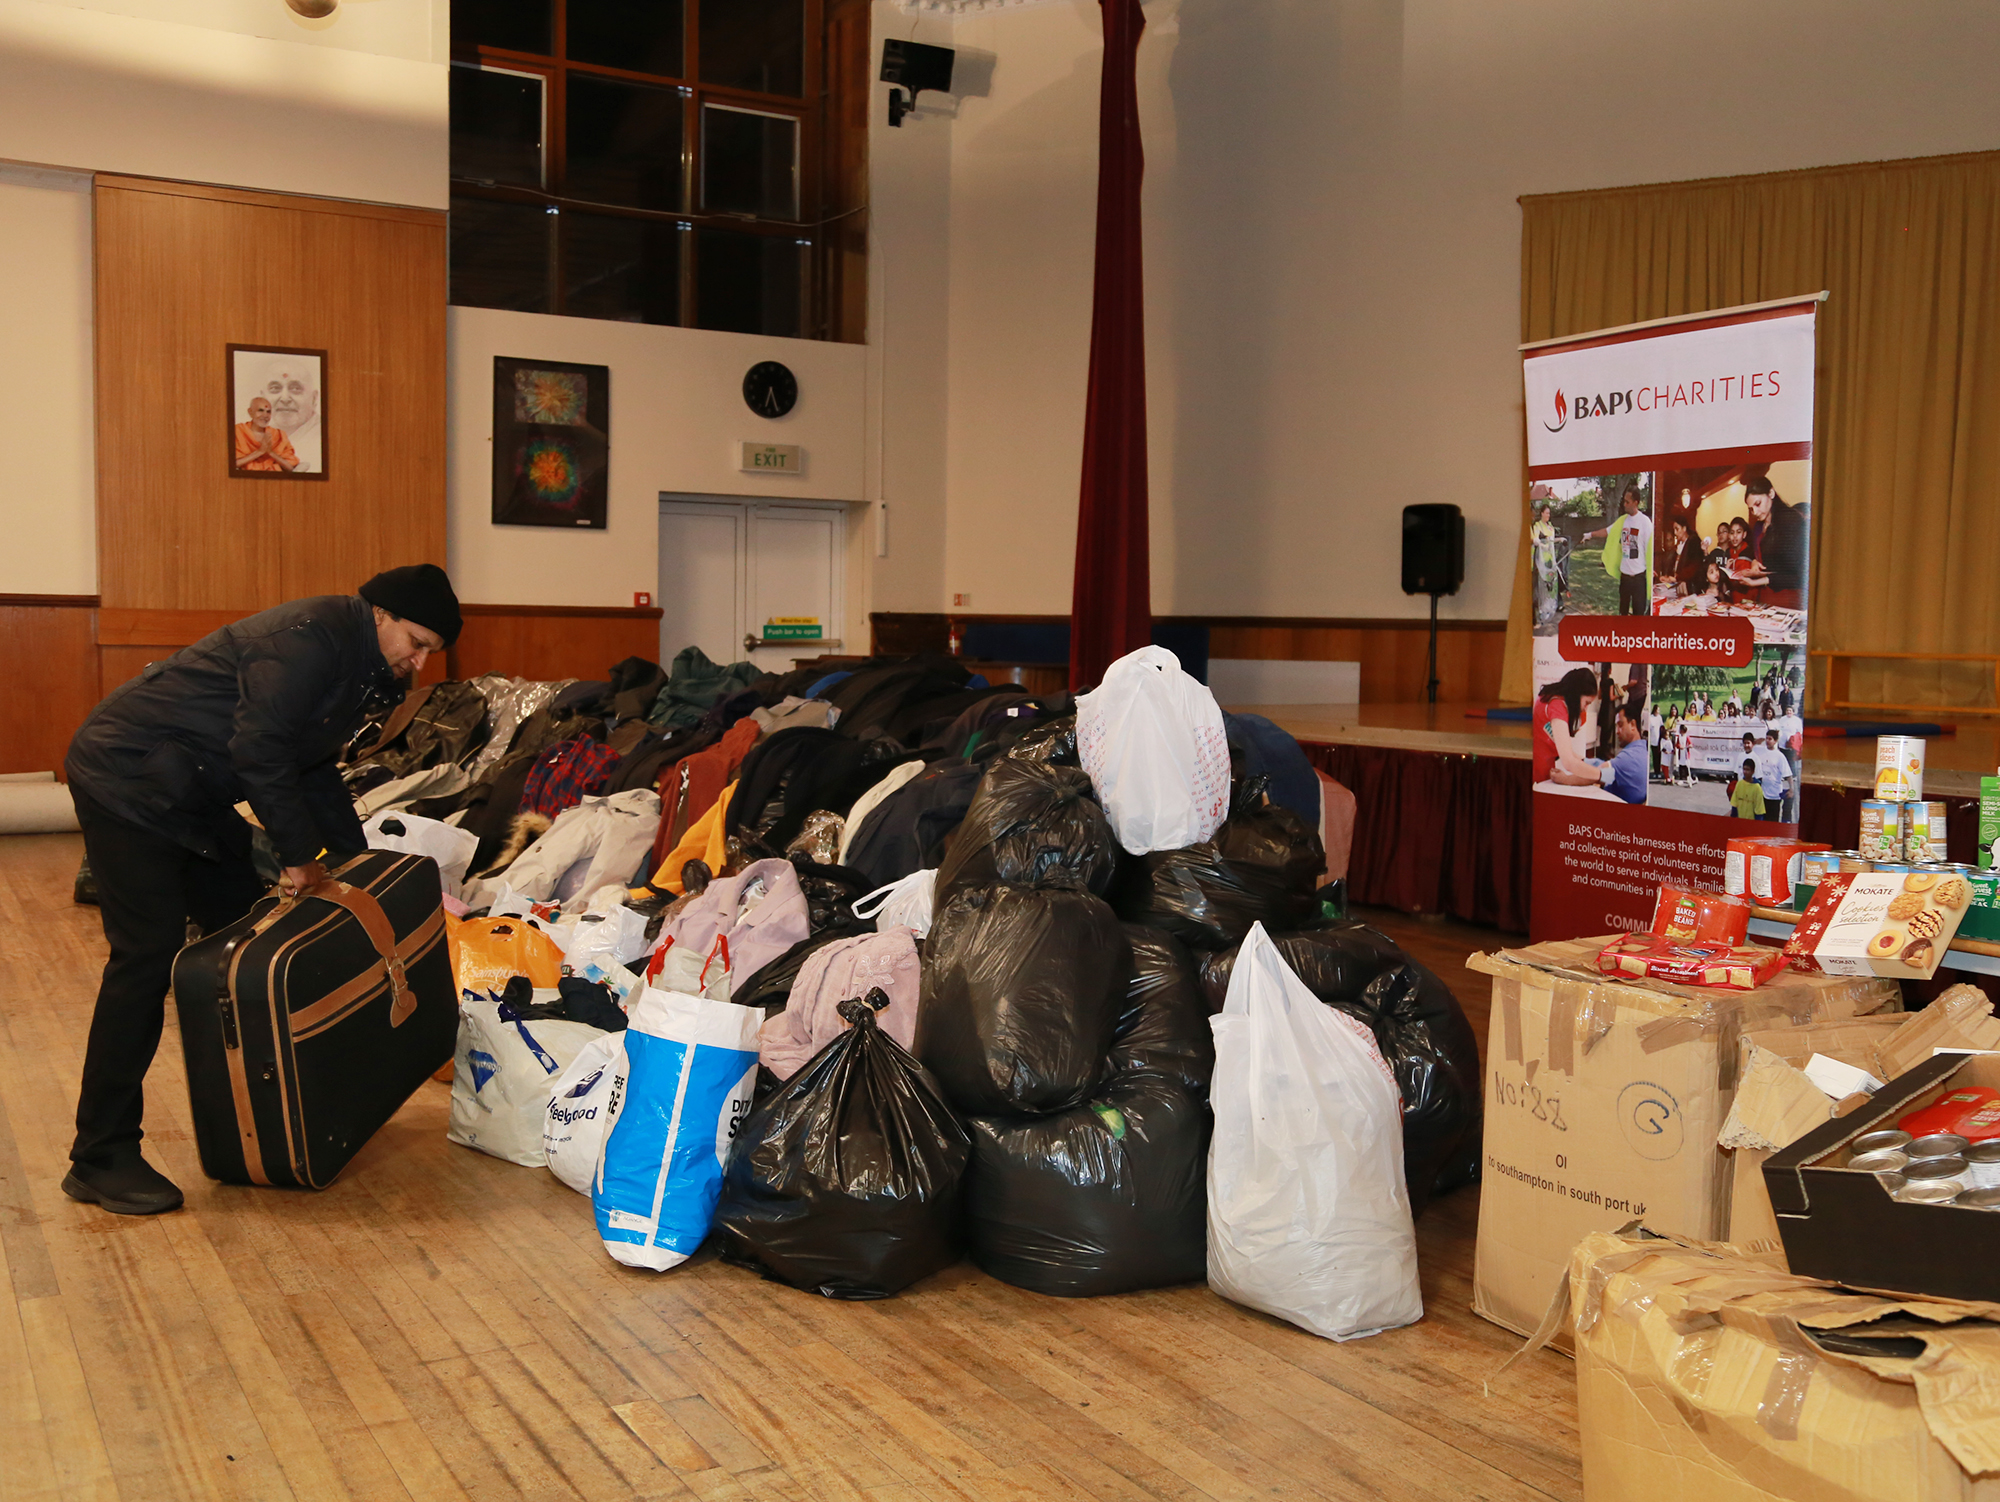 1812_london_wintercharitydrive (4)a